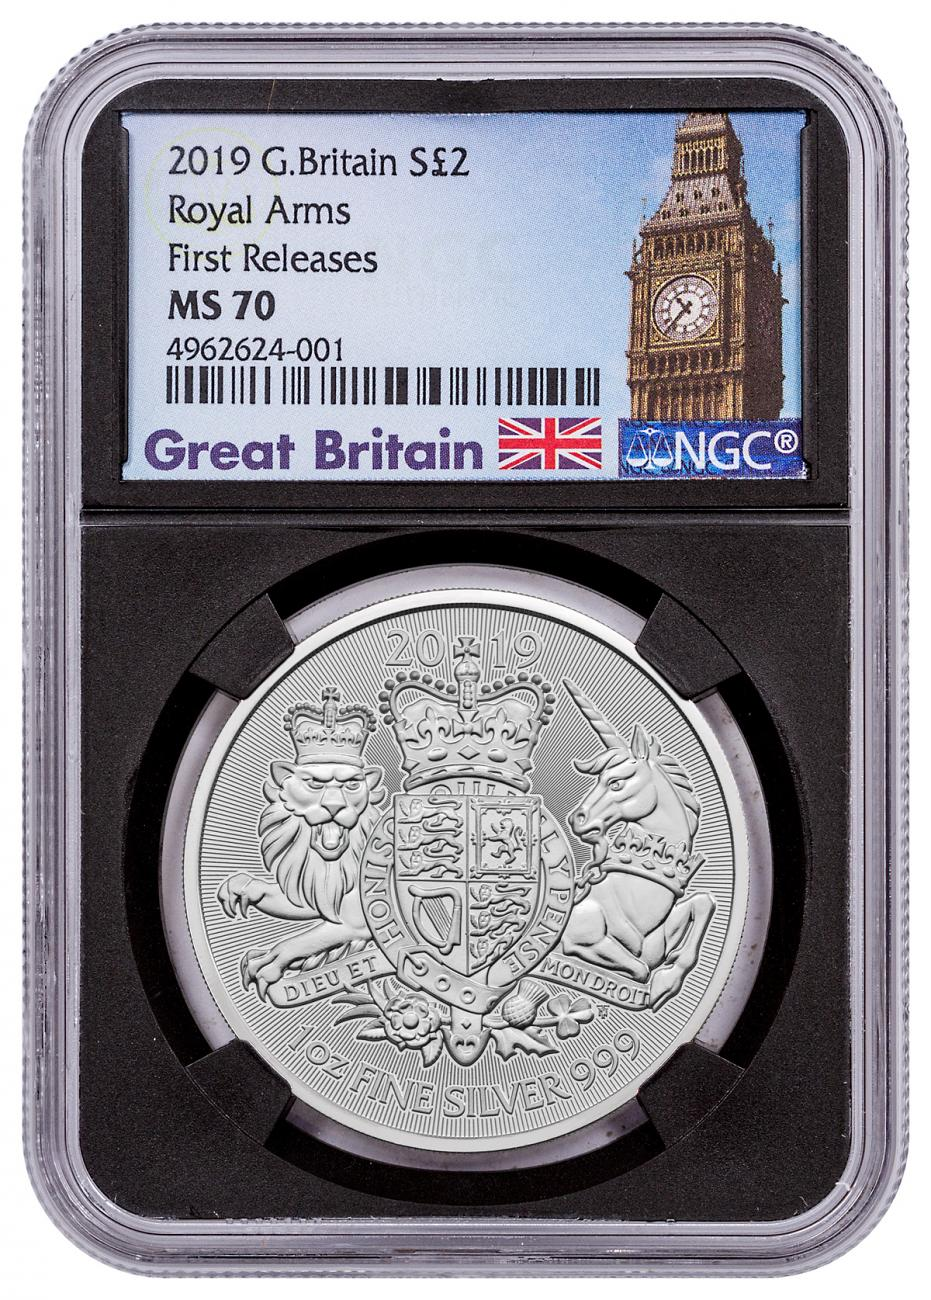 2019 Great Britain 1 oz Silver Royal Arms £2 Coin NGC MS70 FR Black Core Holder Great Britain Label